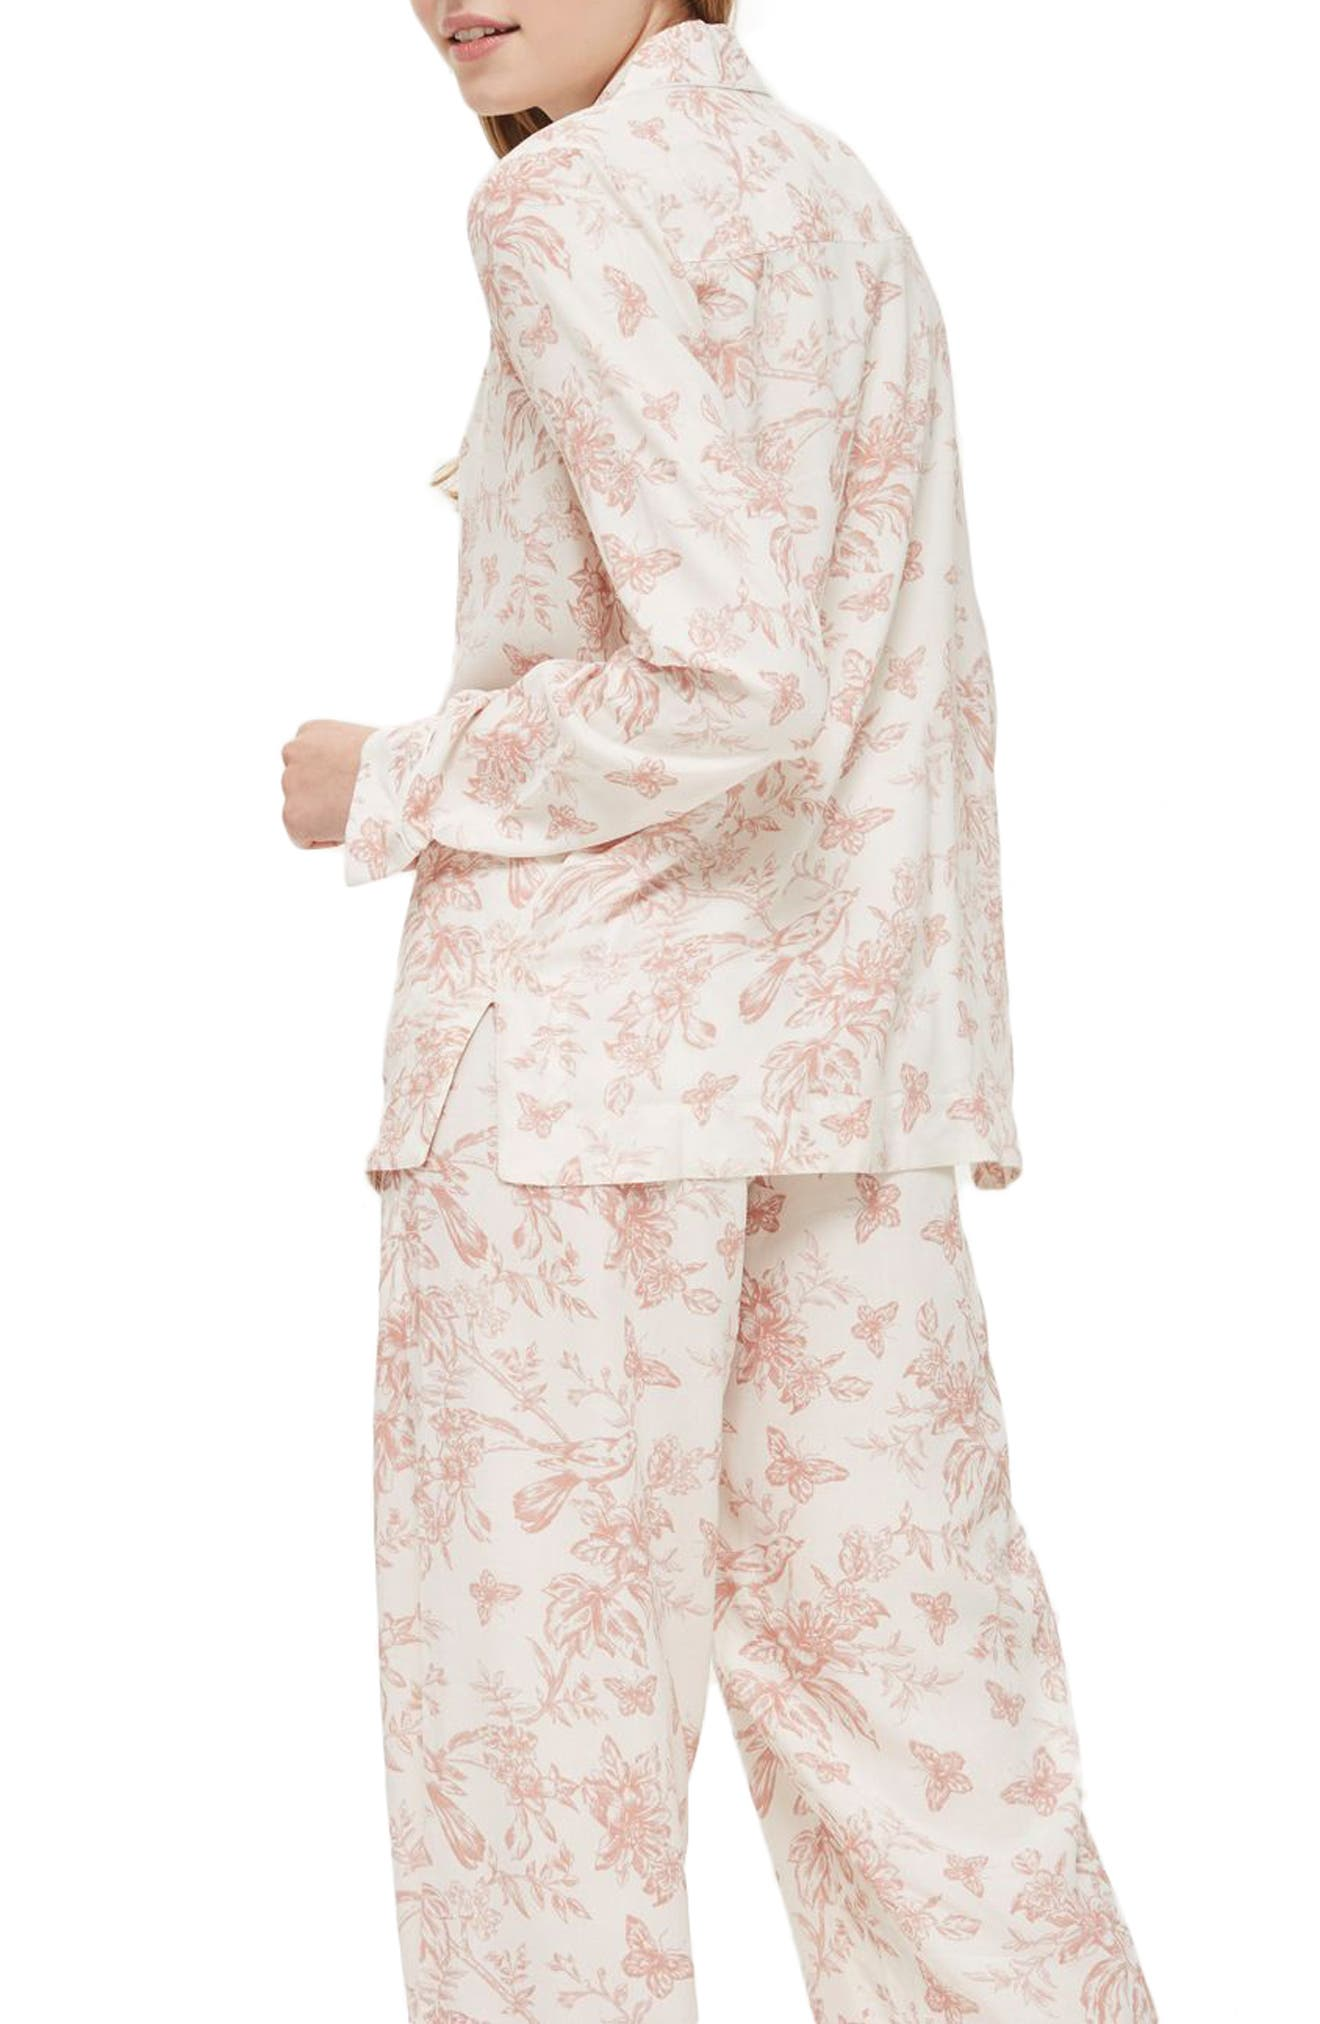 French Floral Pajamas,                             Alternate thumbnail 2, color,                             680